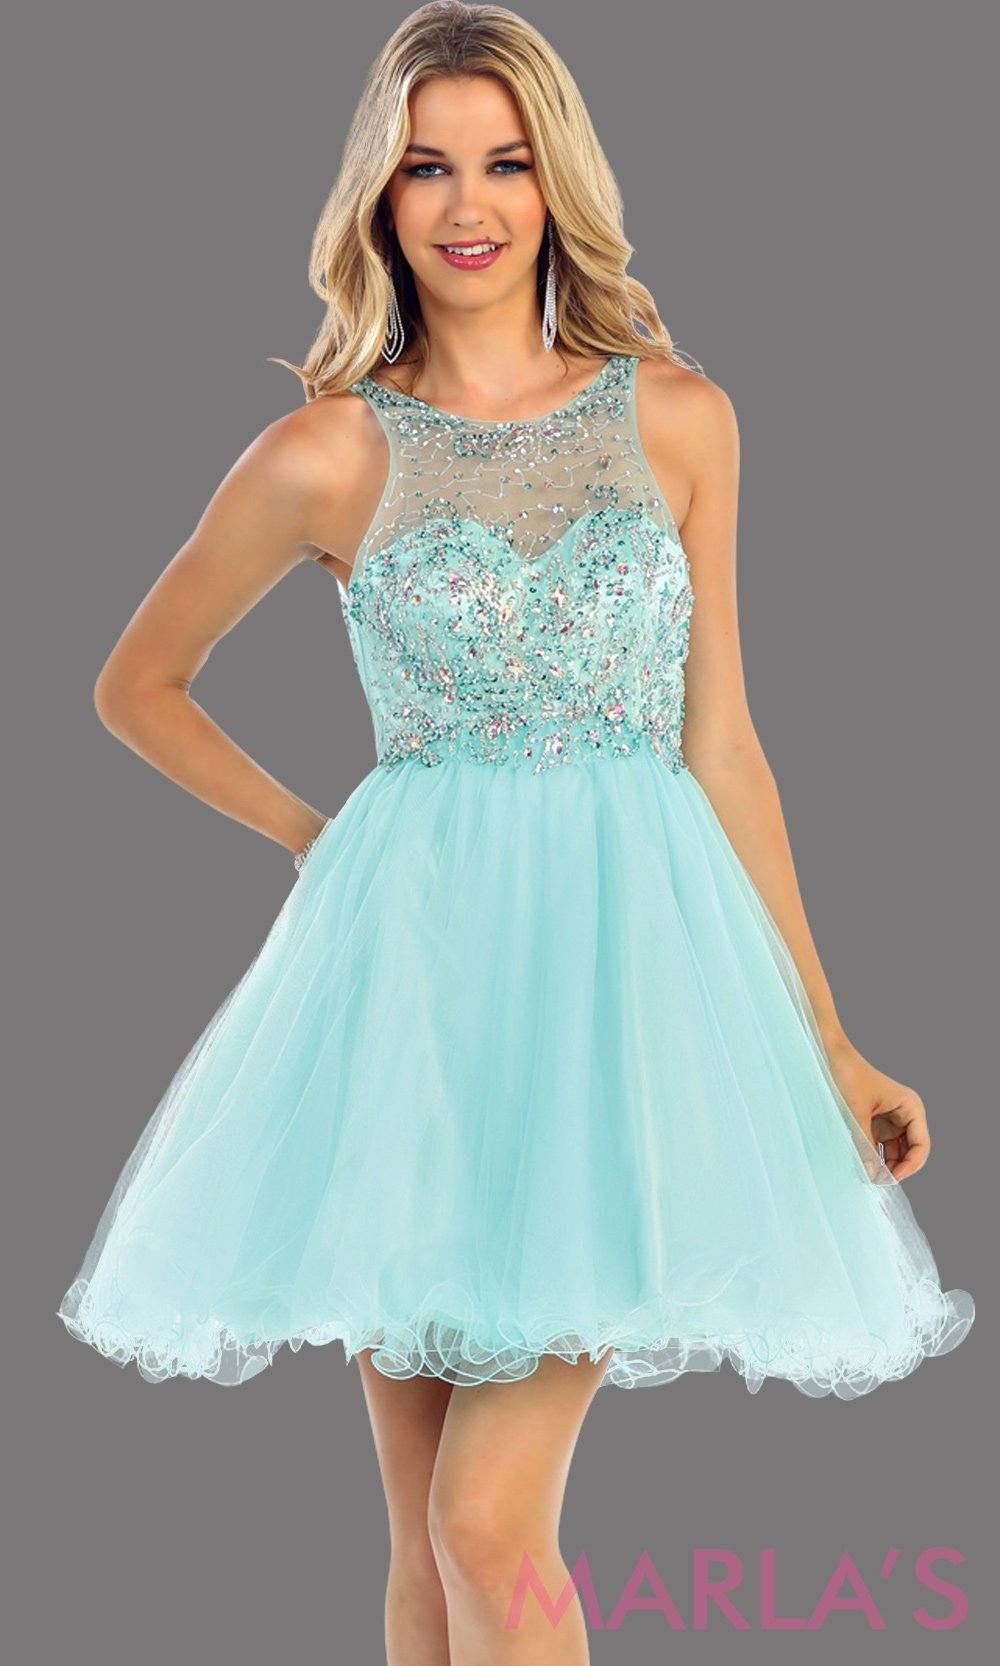 Short aqua dress with a high neck beaded bodice. It flows into a full tulle skirt. This light blue dress is perfect for grade 8 graduation, homecoming, or damas. Available in plus sizes